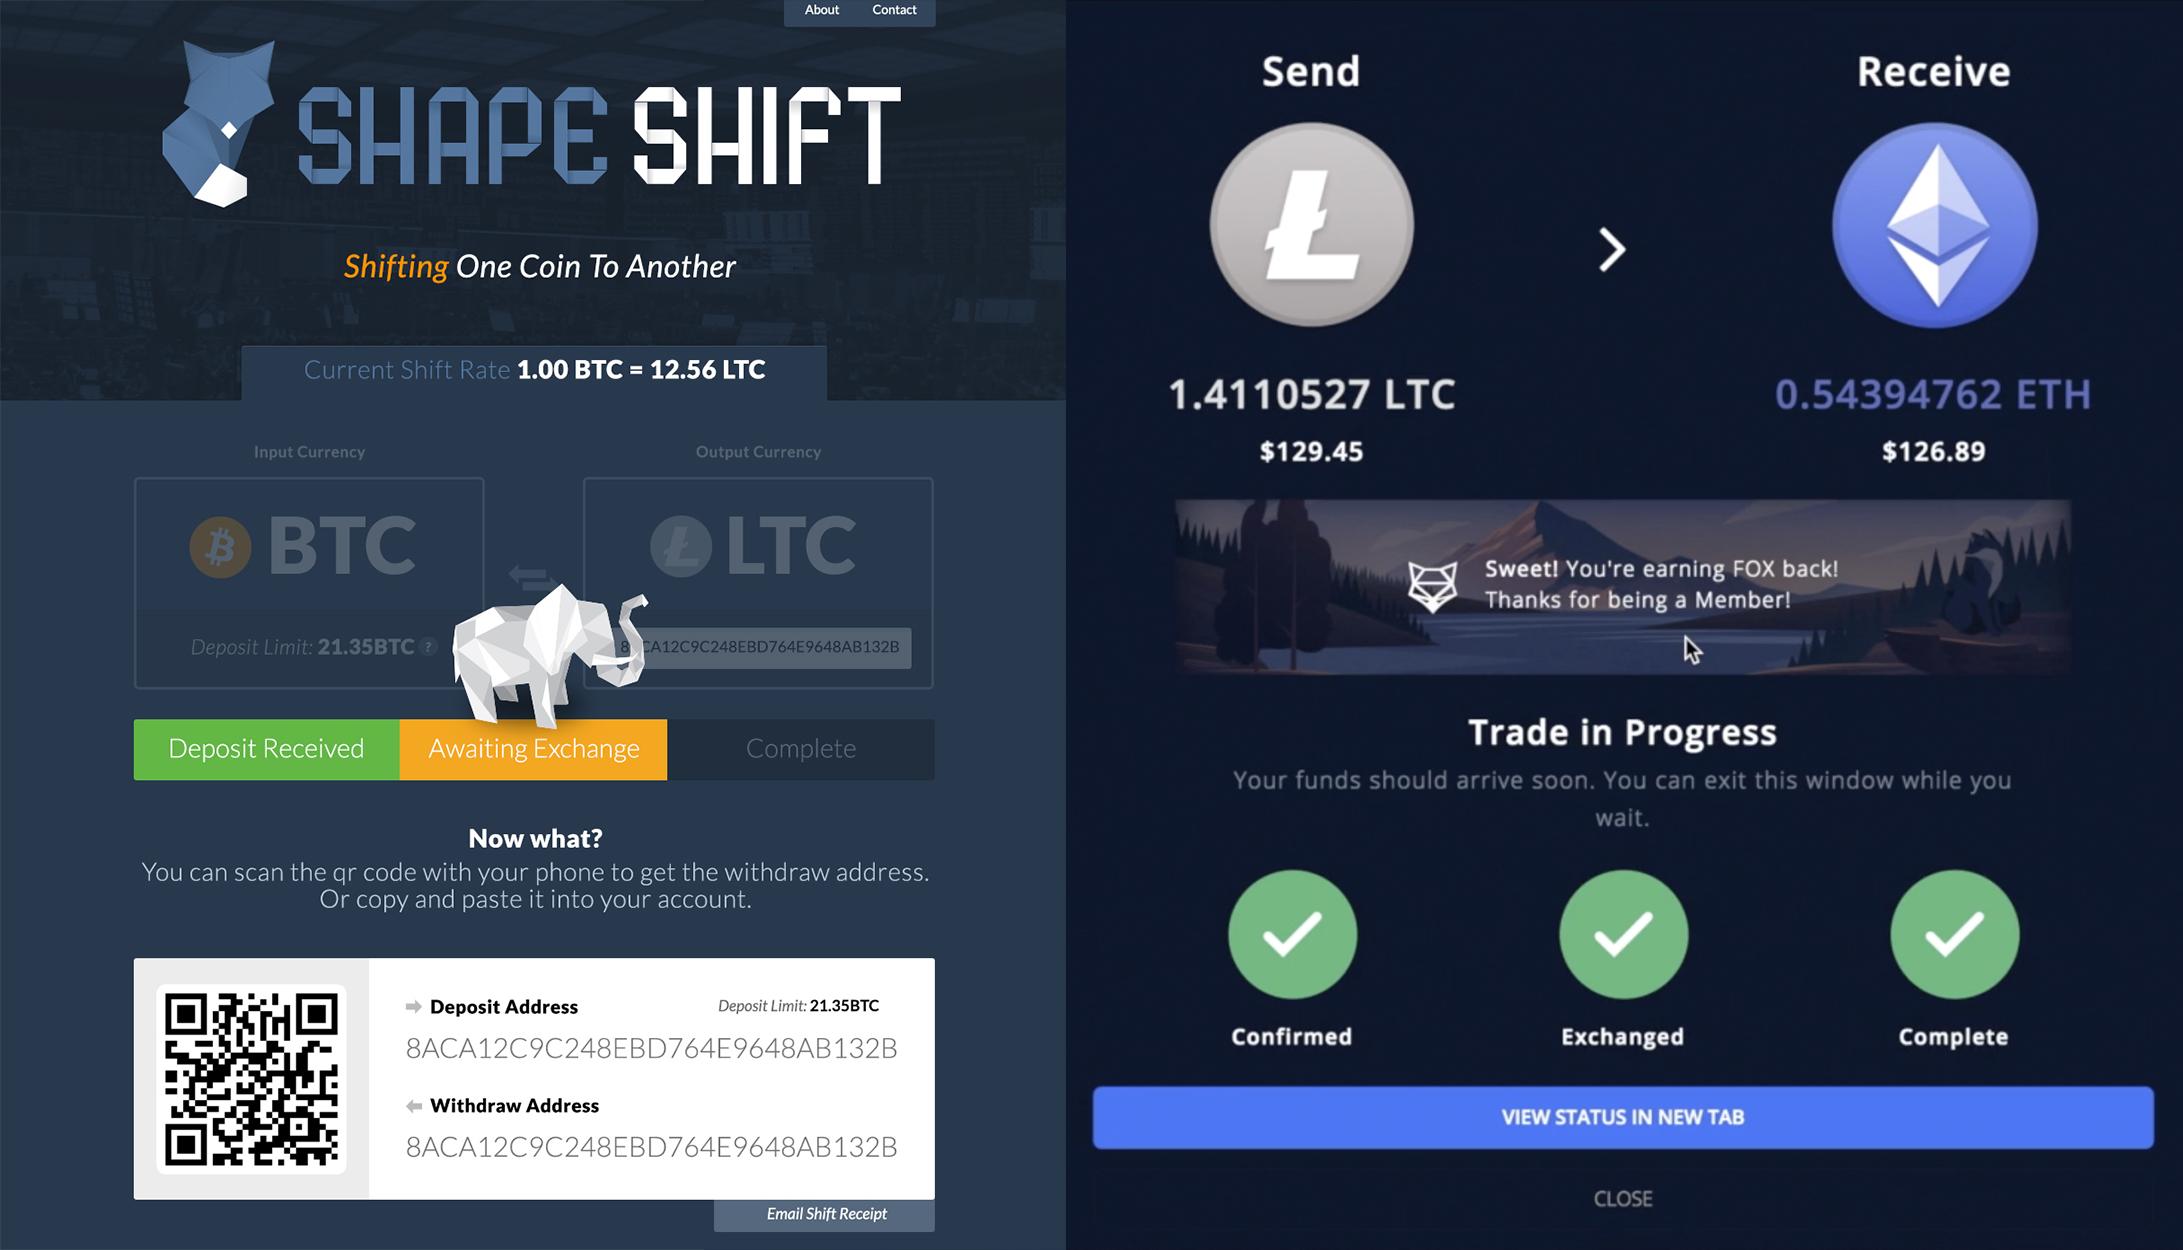 See how far we've come — Visit ShapeShift.com to try our new complete crypto management platform.